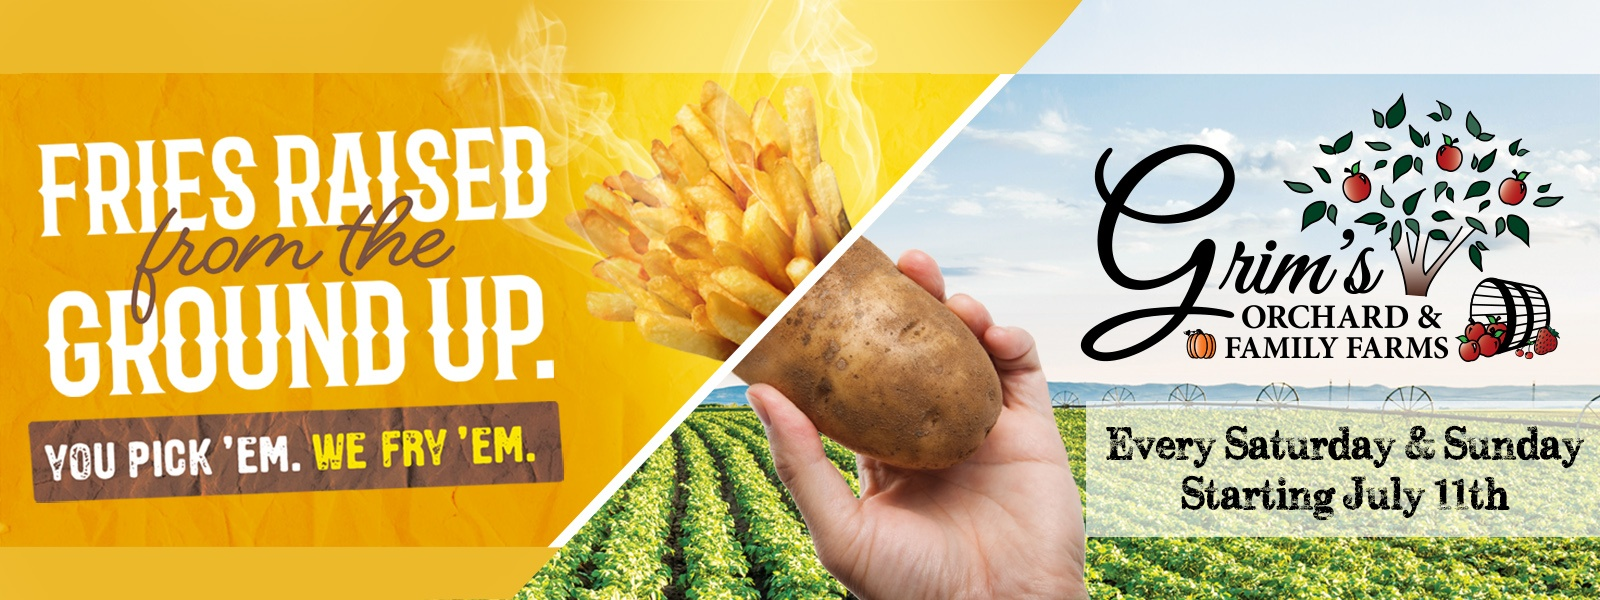 Our Great Potato Dig provides you with the ability to pick your own fresh potatoes and have them turned right into french fries.